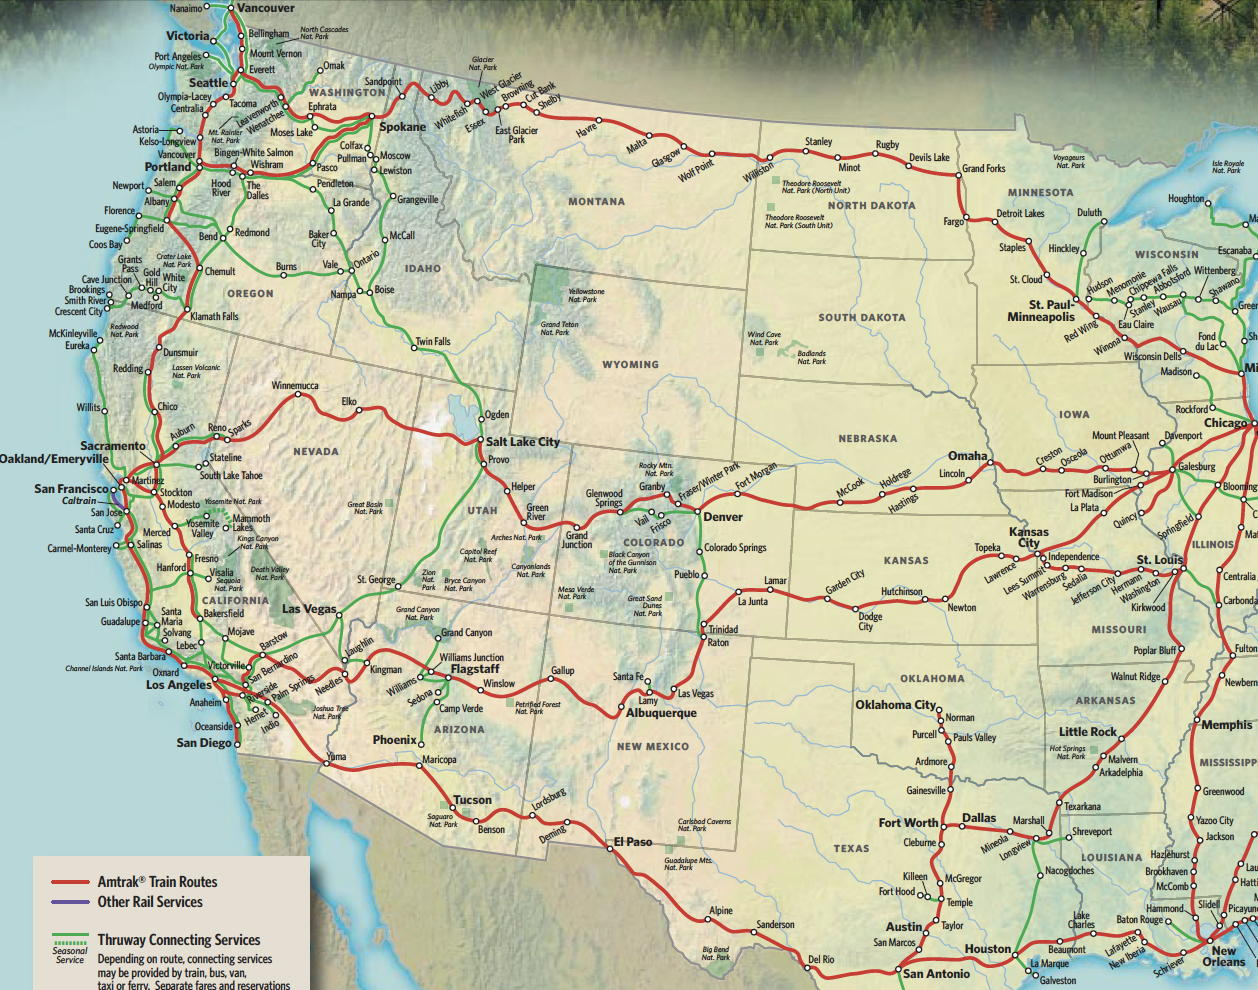 Train Links California State Map California Zephyr Route Map - California Zephyr Route Map